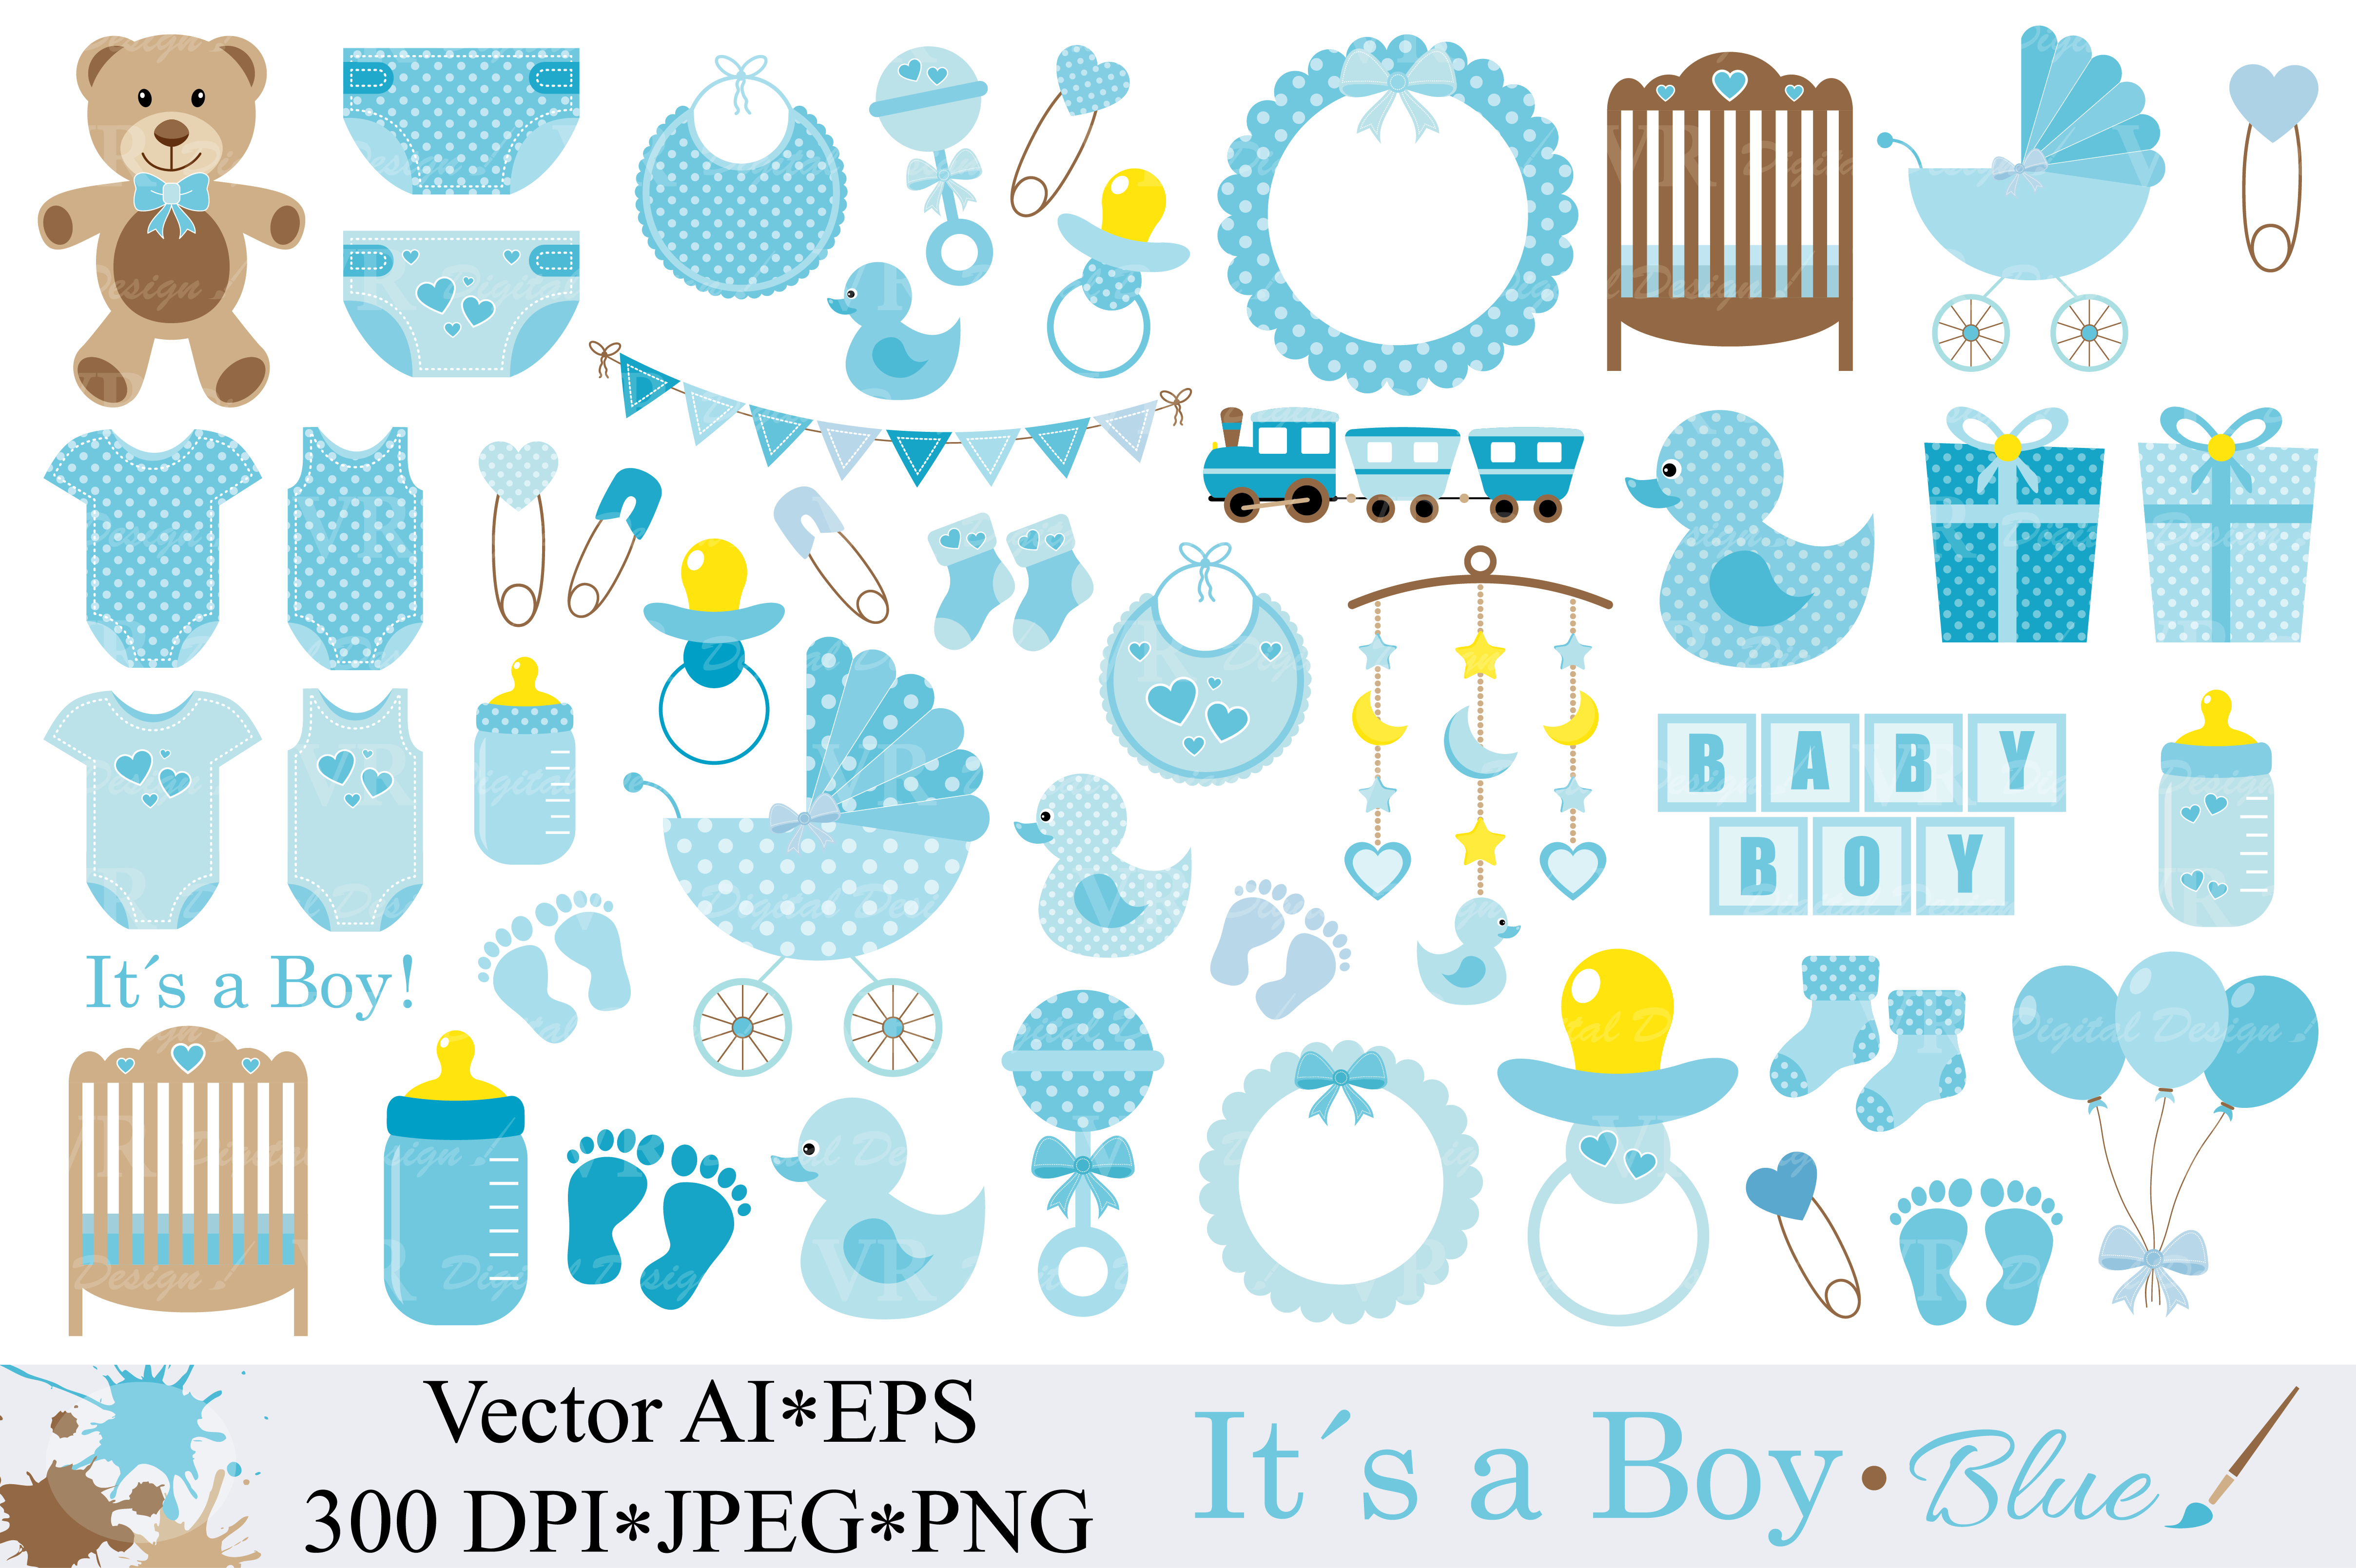 Baby Boy Clipart Graphic Illustrations By VR Digital Design